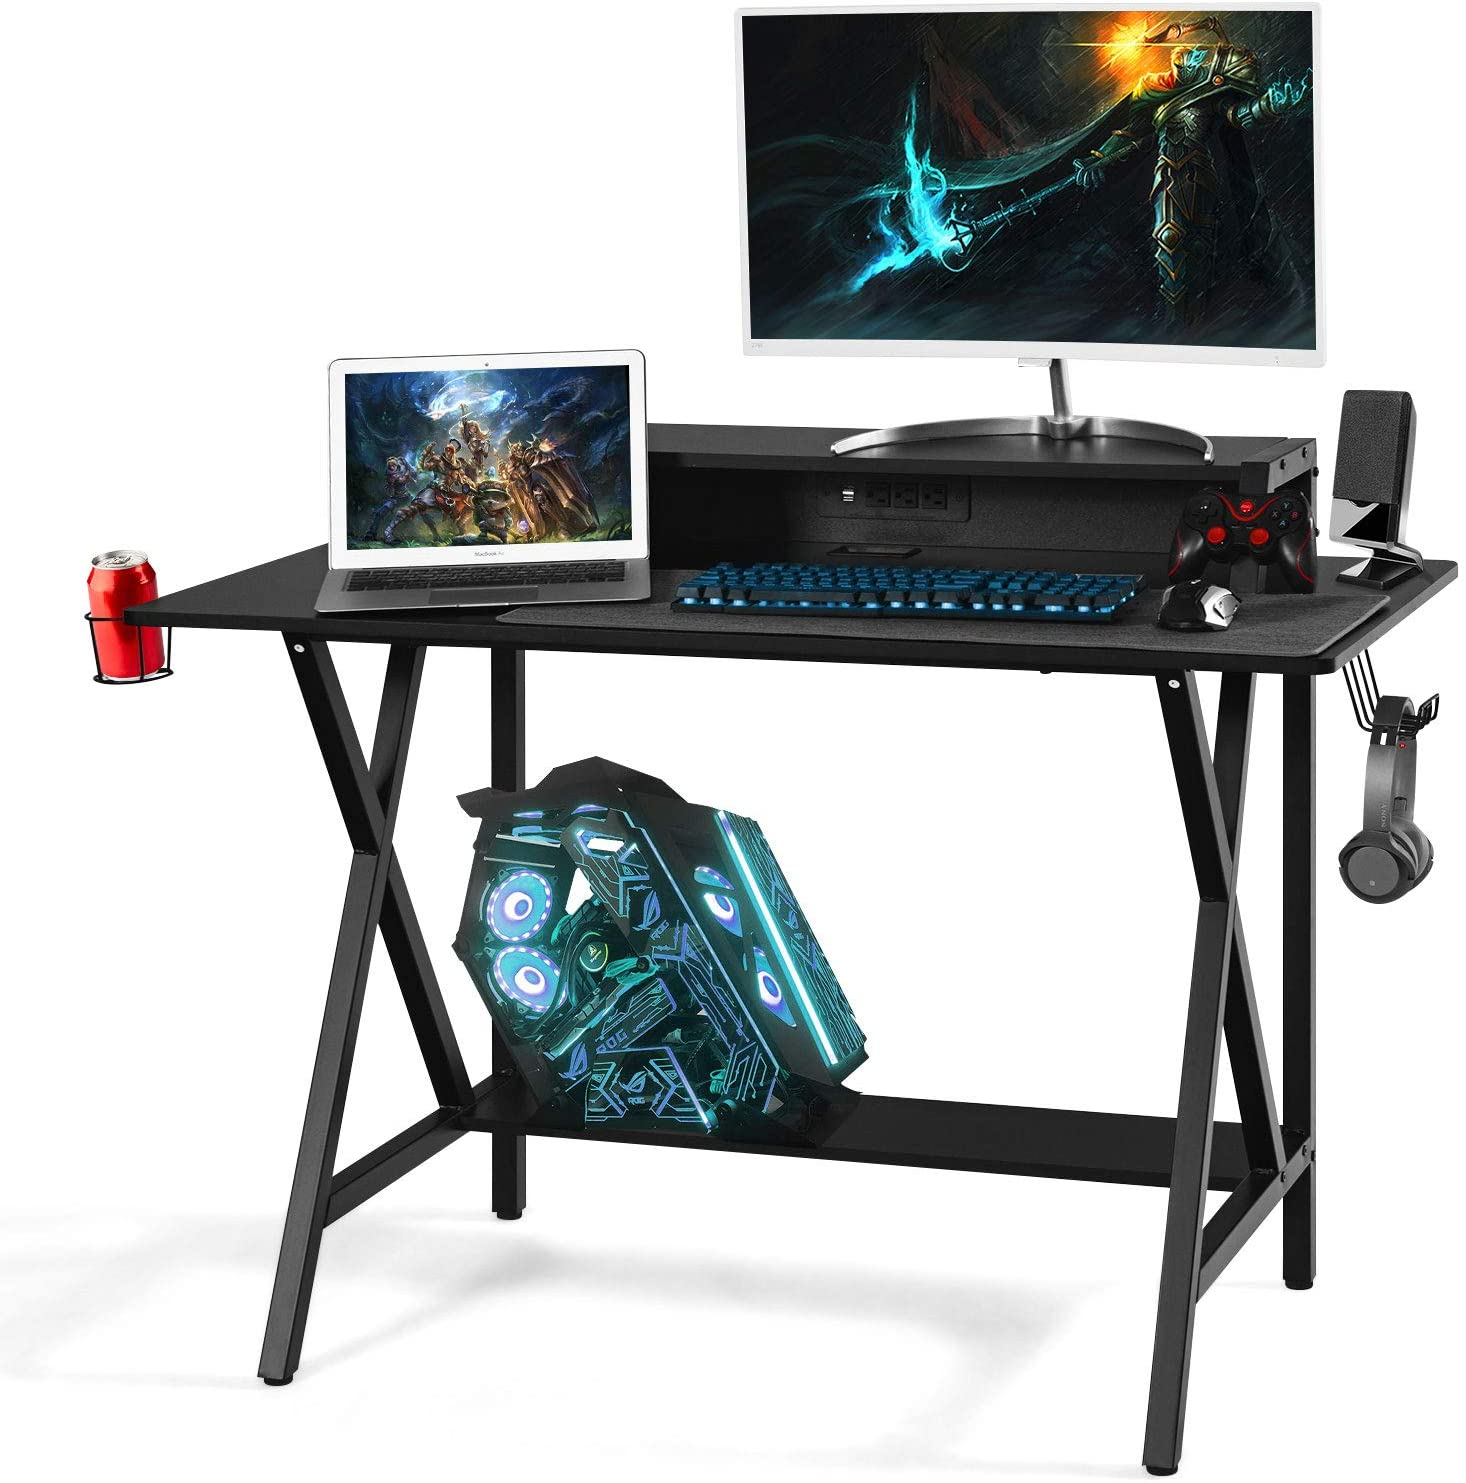 Gaming Desk with Monitor Shelf, 48 Inches E-Sport Gamer Workstation PC Stand Shelf Built-in Power Strip with USB, Home Office Computer Desk Writing Table with Cup and Headphone Holder, Black